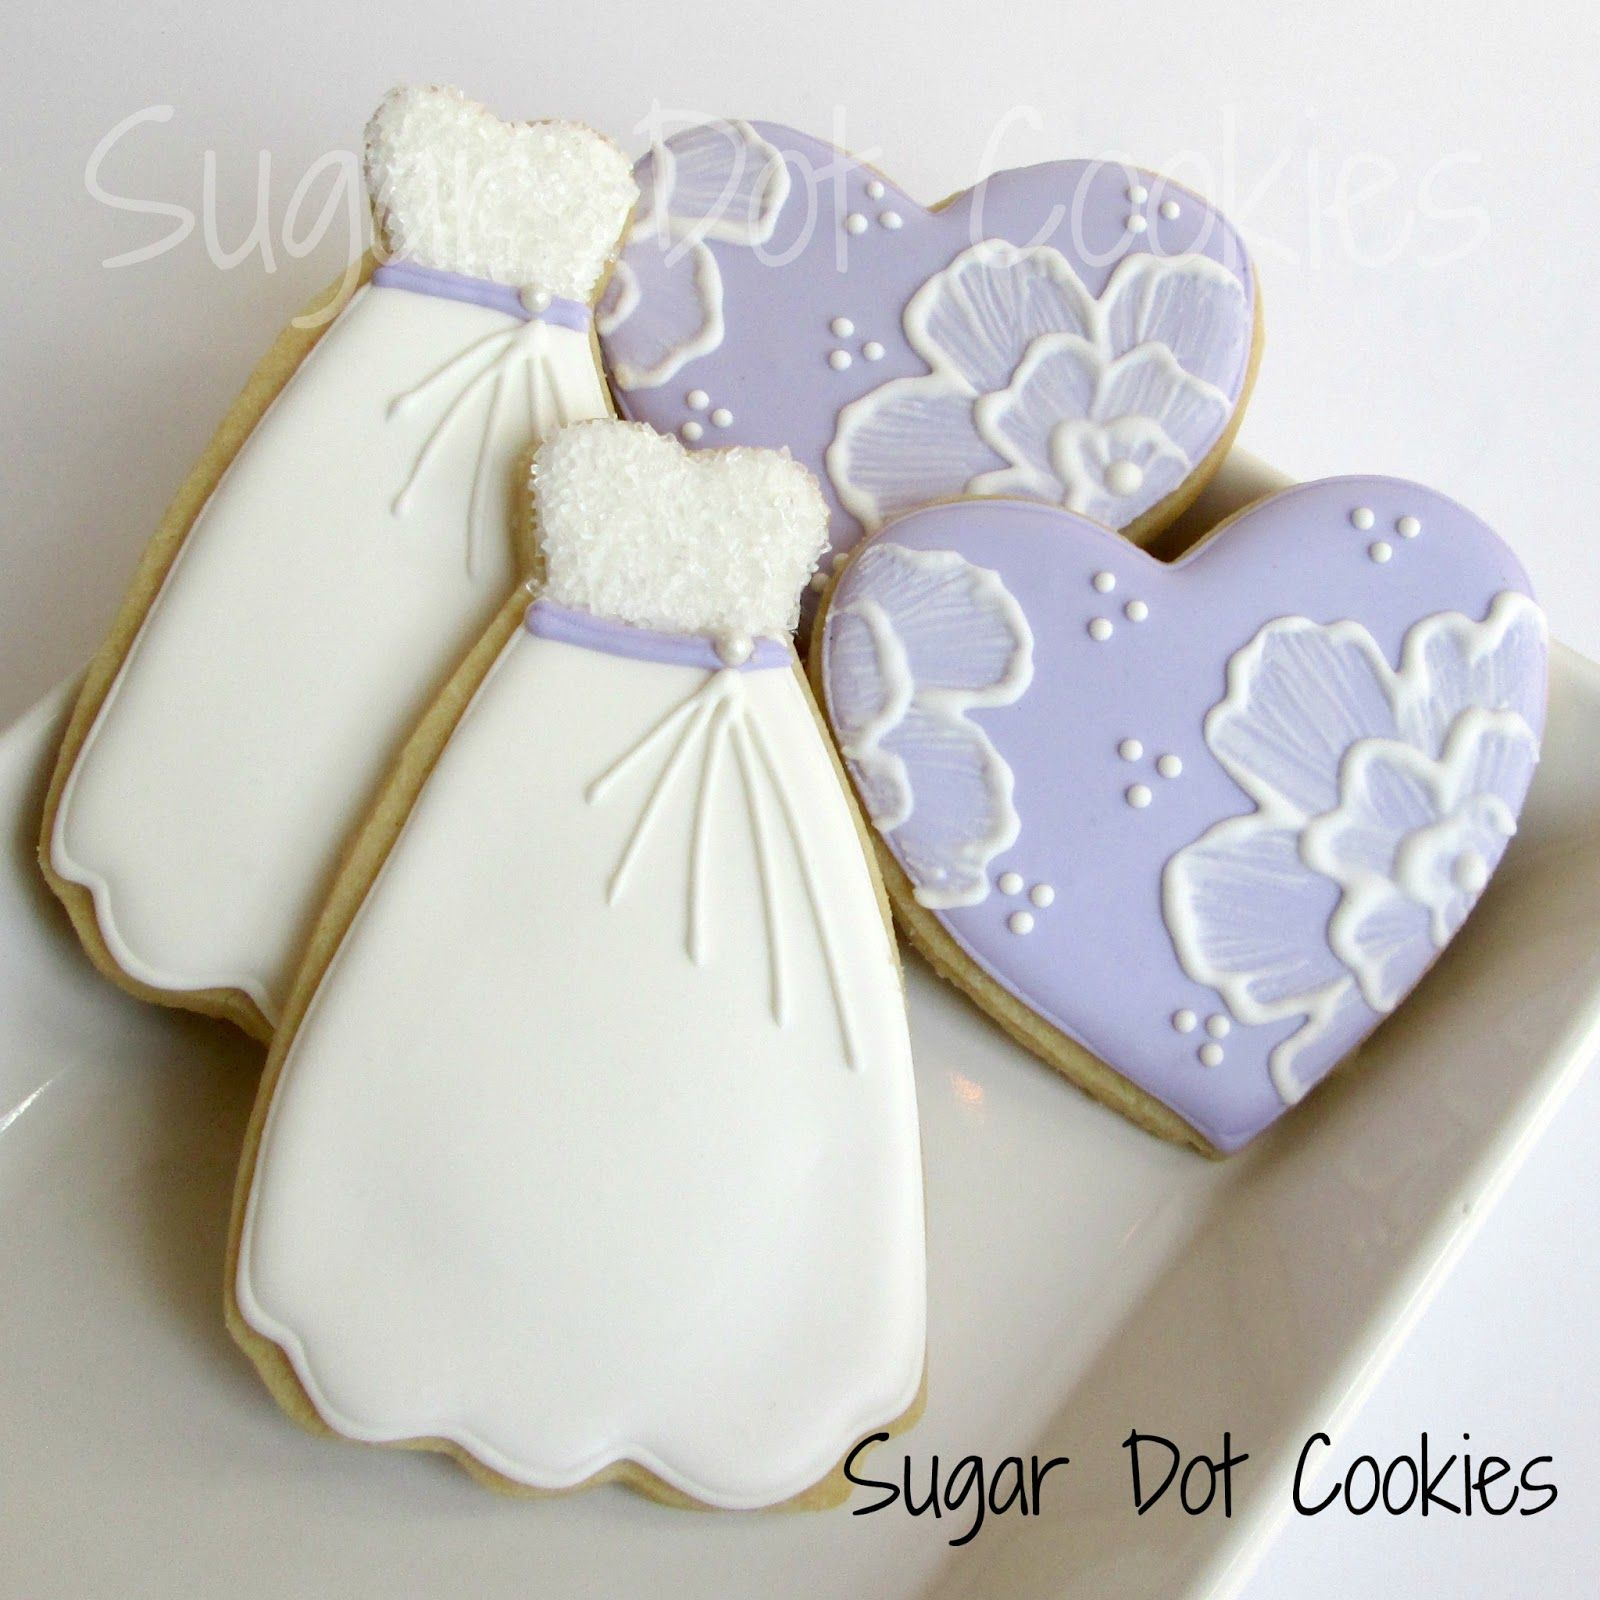 how to decorate a wedding dress cookie cutter Sugar Dot